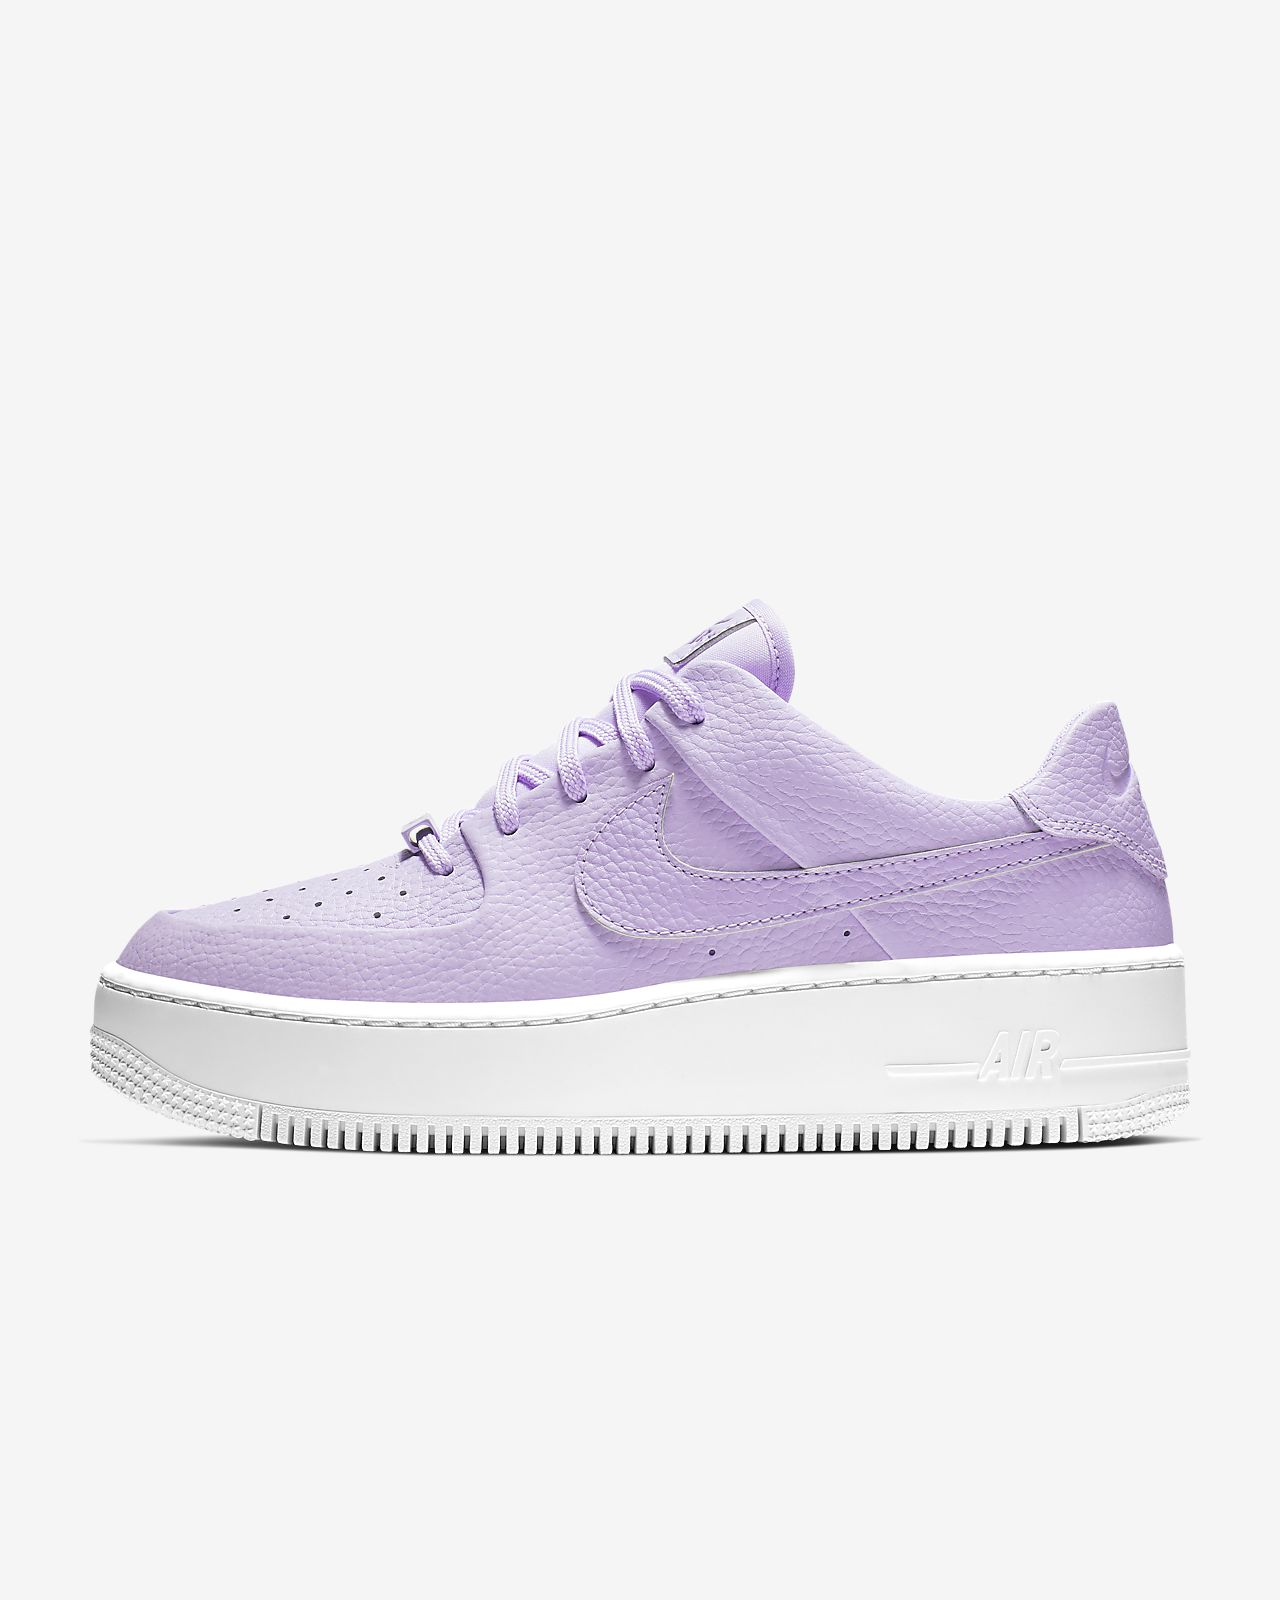 82a91c989b490 Nike Air Force 1 Sage Low Women's Shoe. Nike.com GB